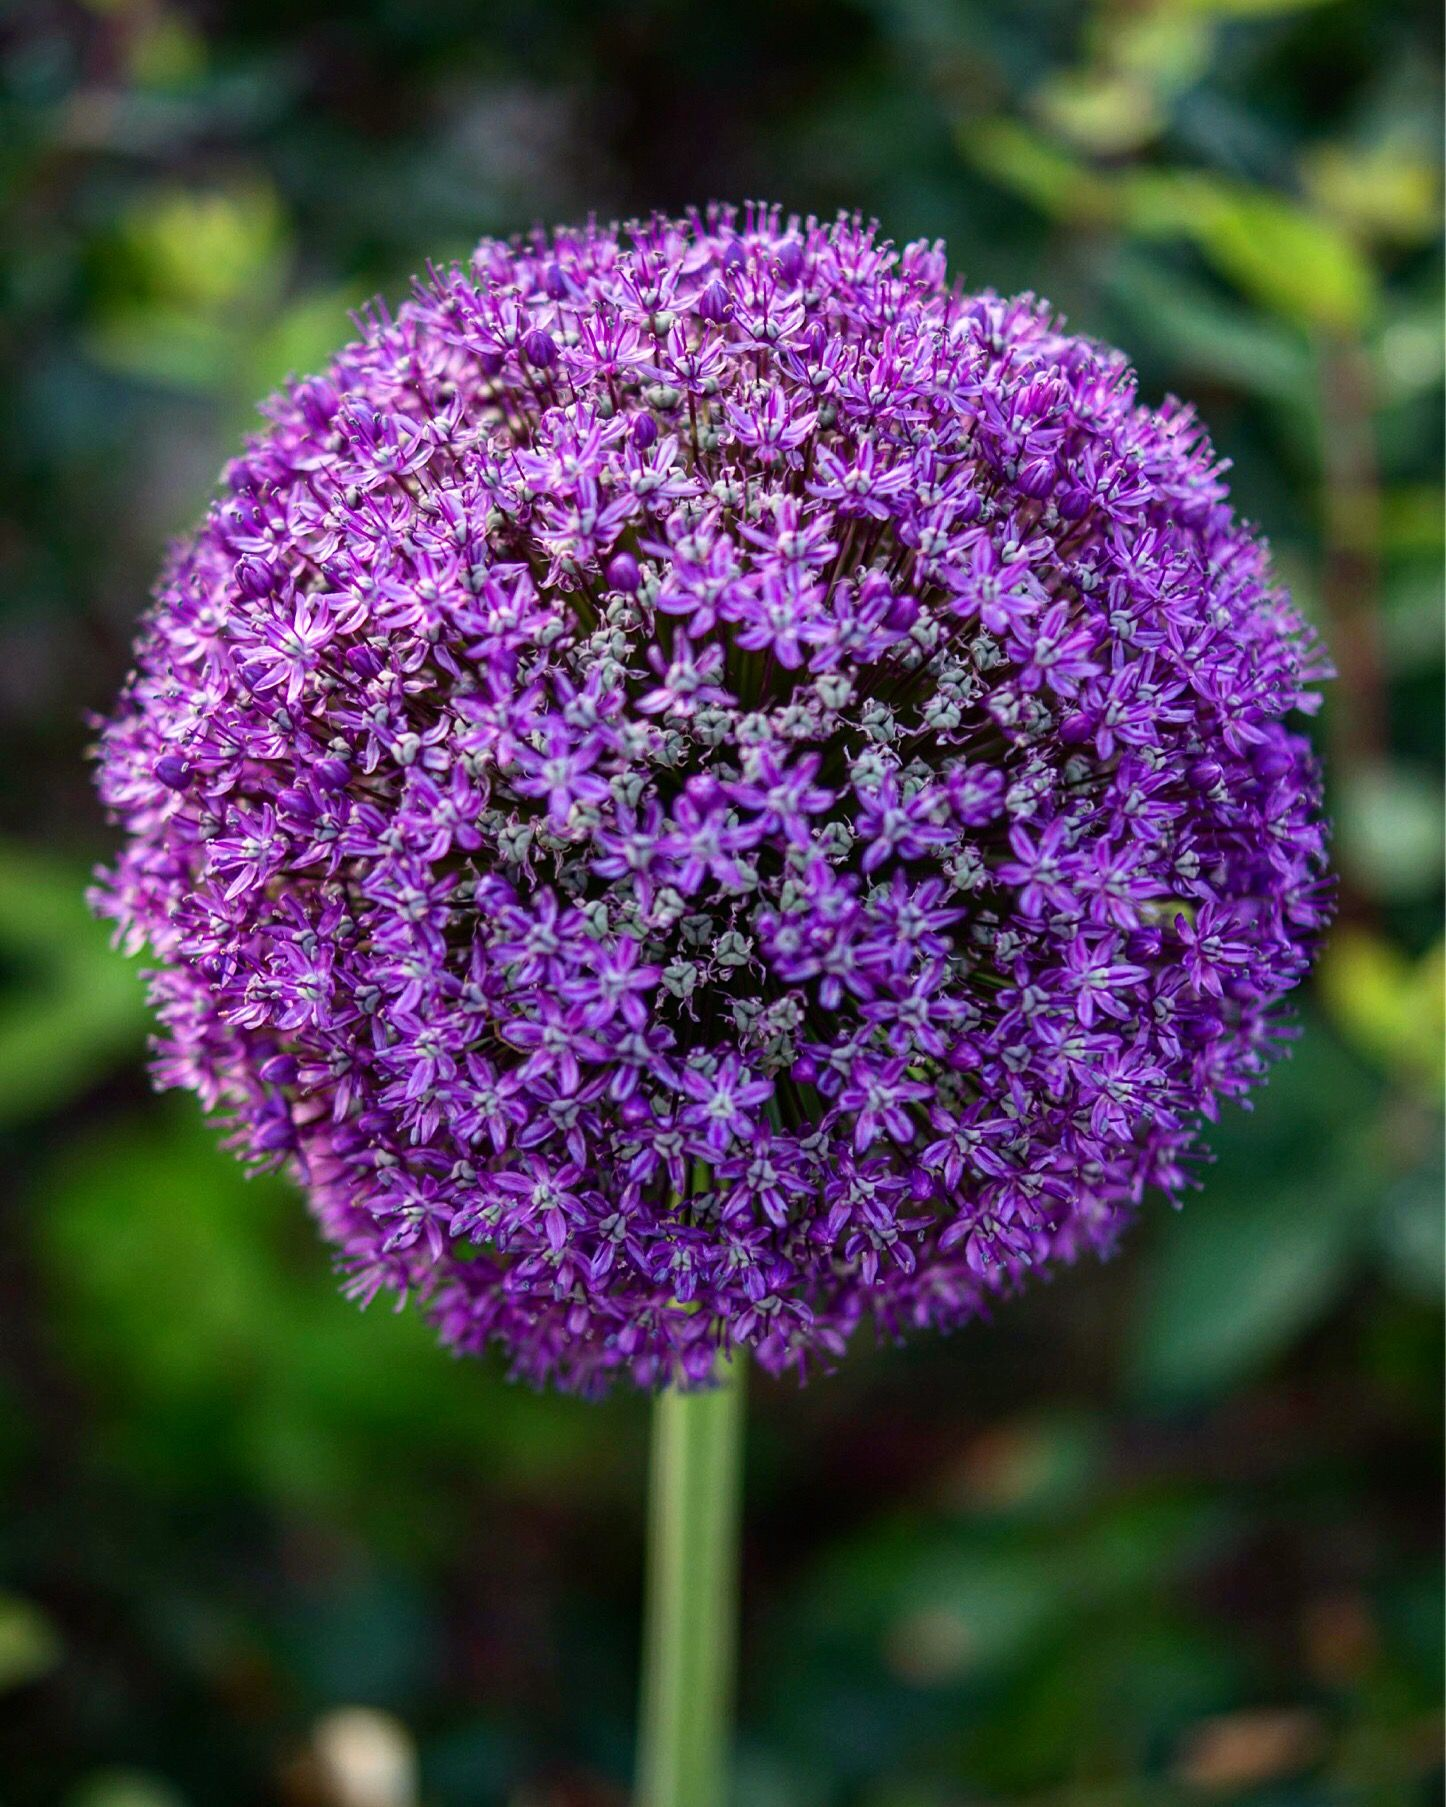 Flower in the form of a ball